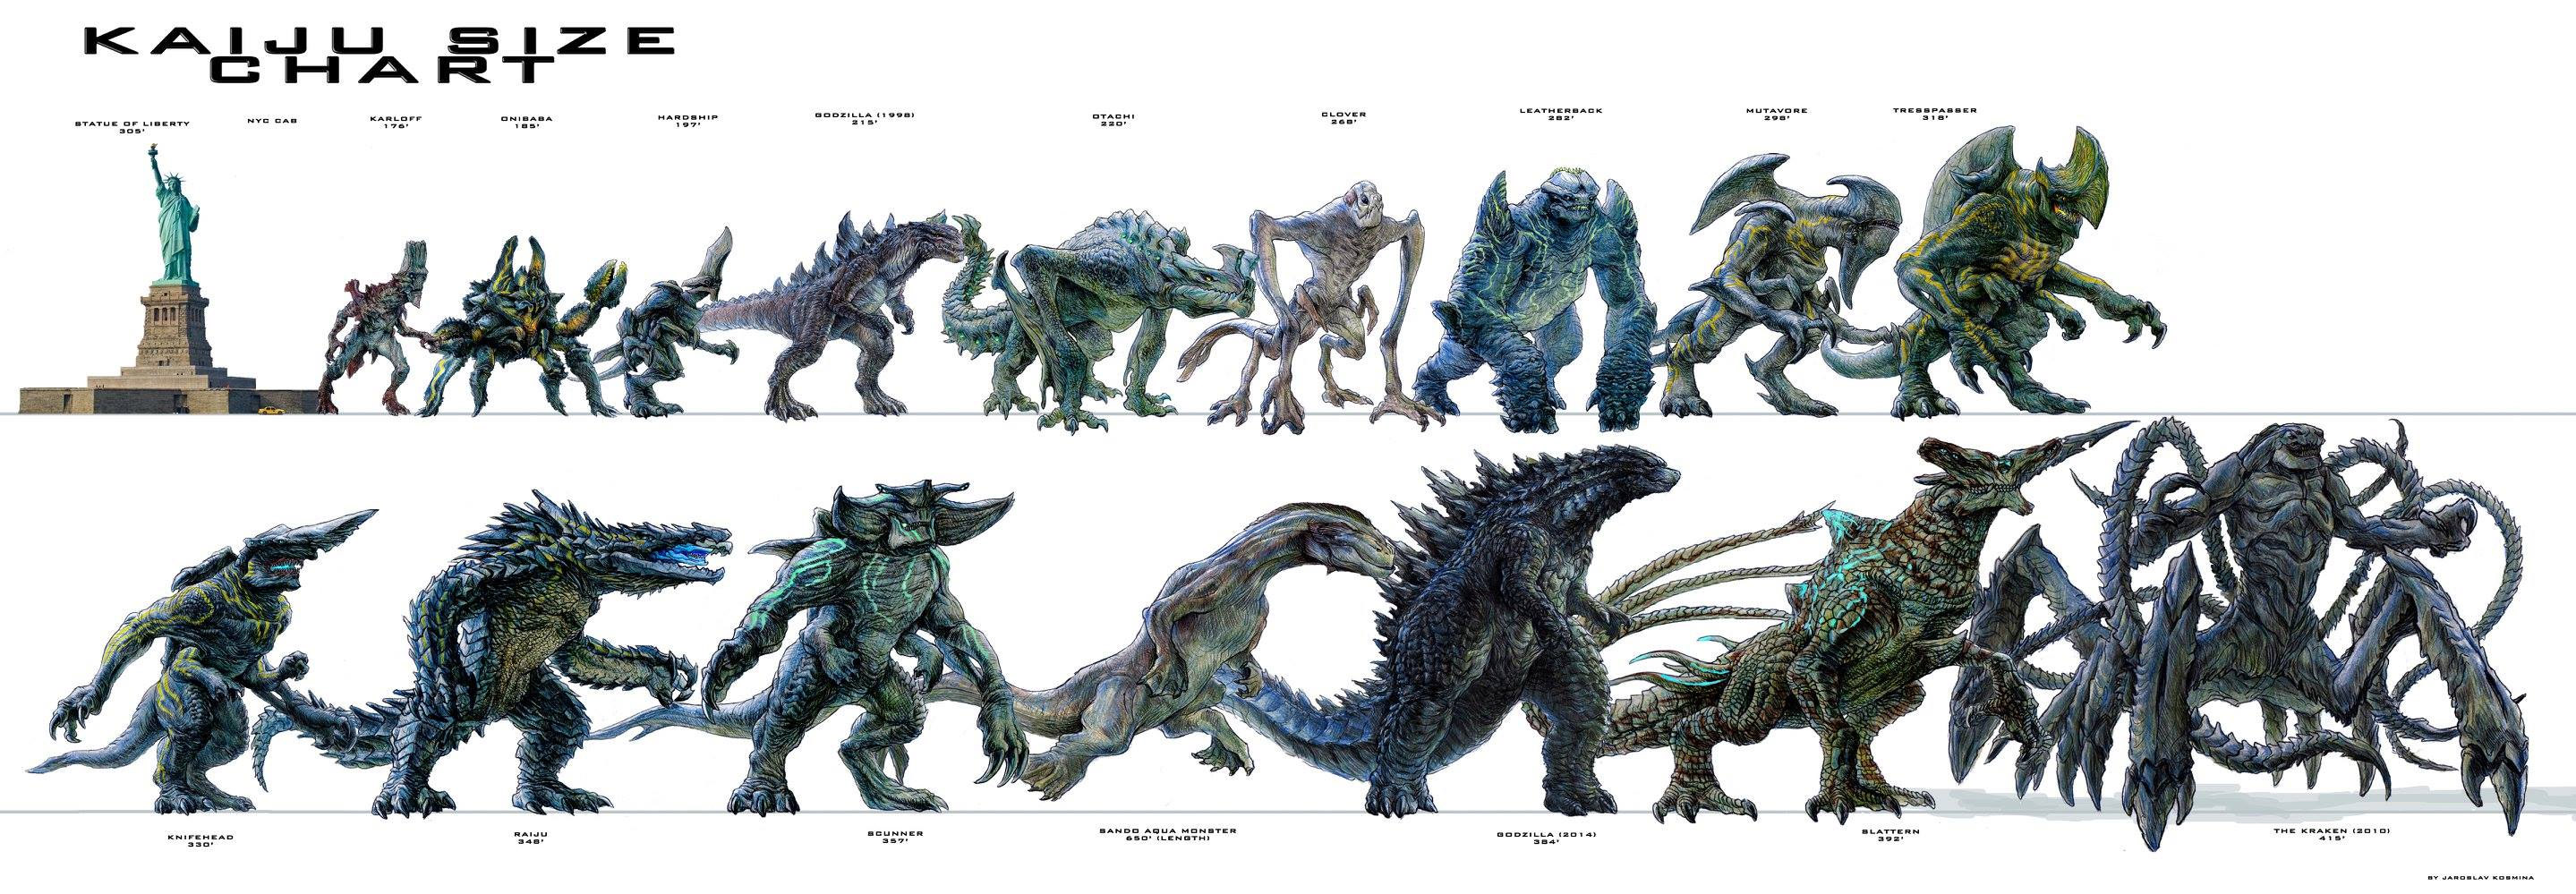 kaiju_size_comparison_chart_full.jpg